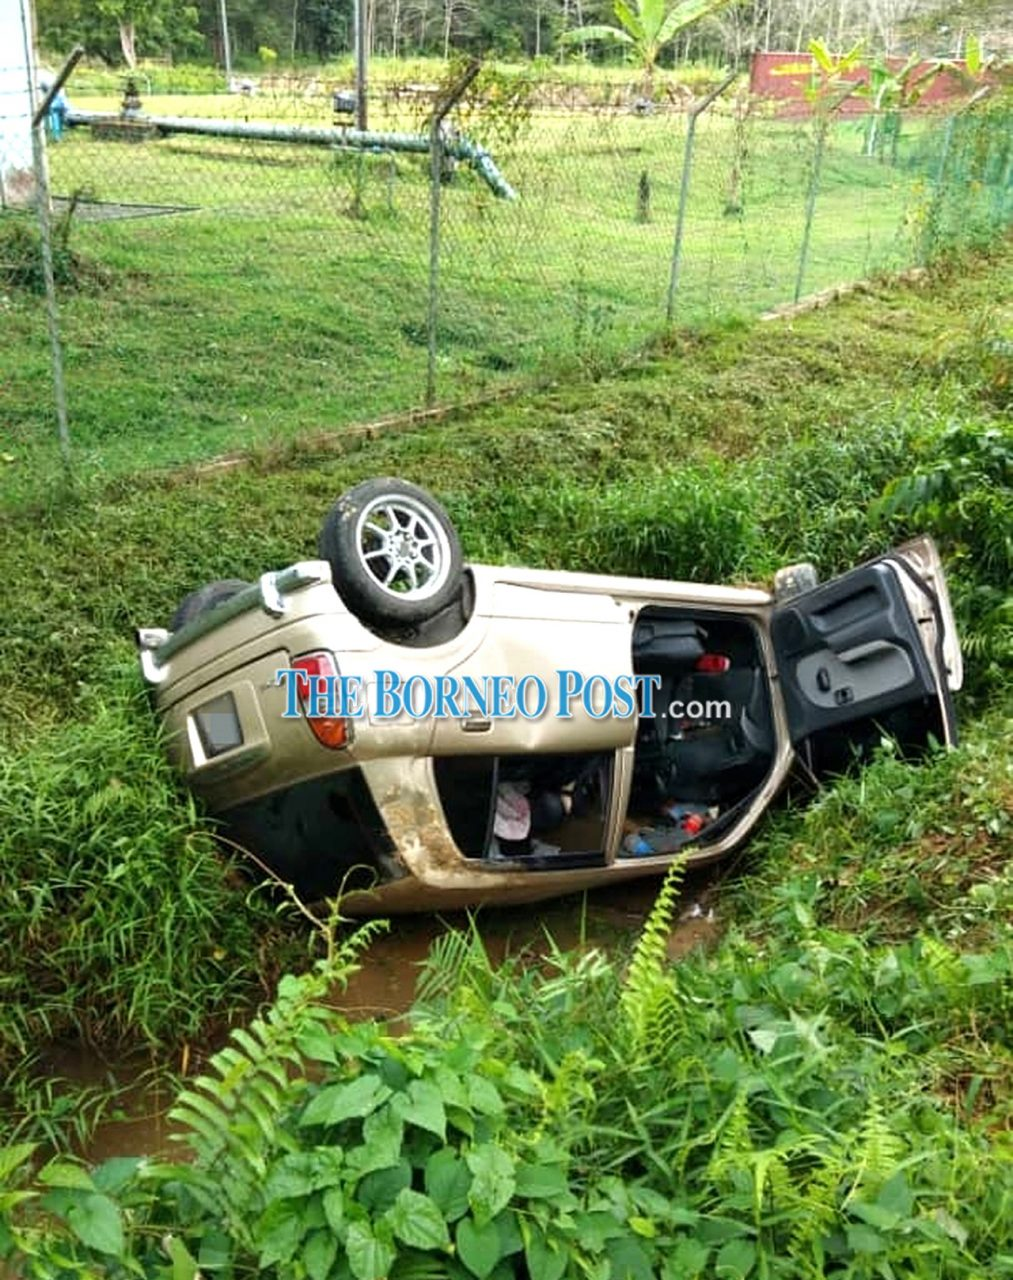 Morning accident leaves woman driver dead, two seriously hurt